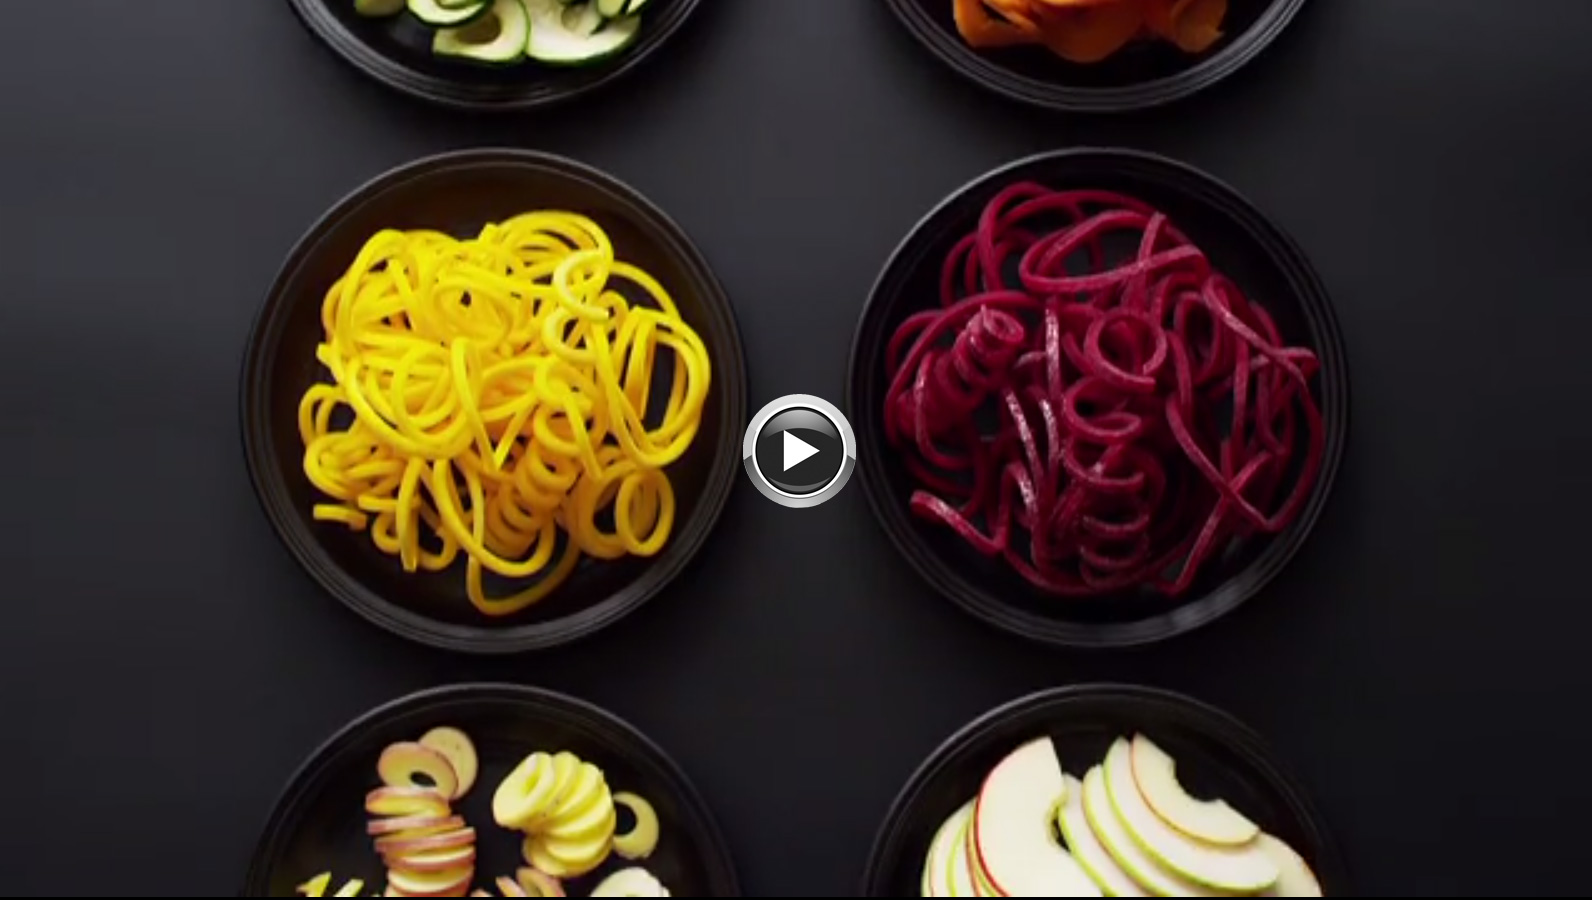 New Kitchenaid Spiralizer Attachment Kicks Up Creativity In The Kitchen